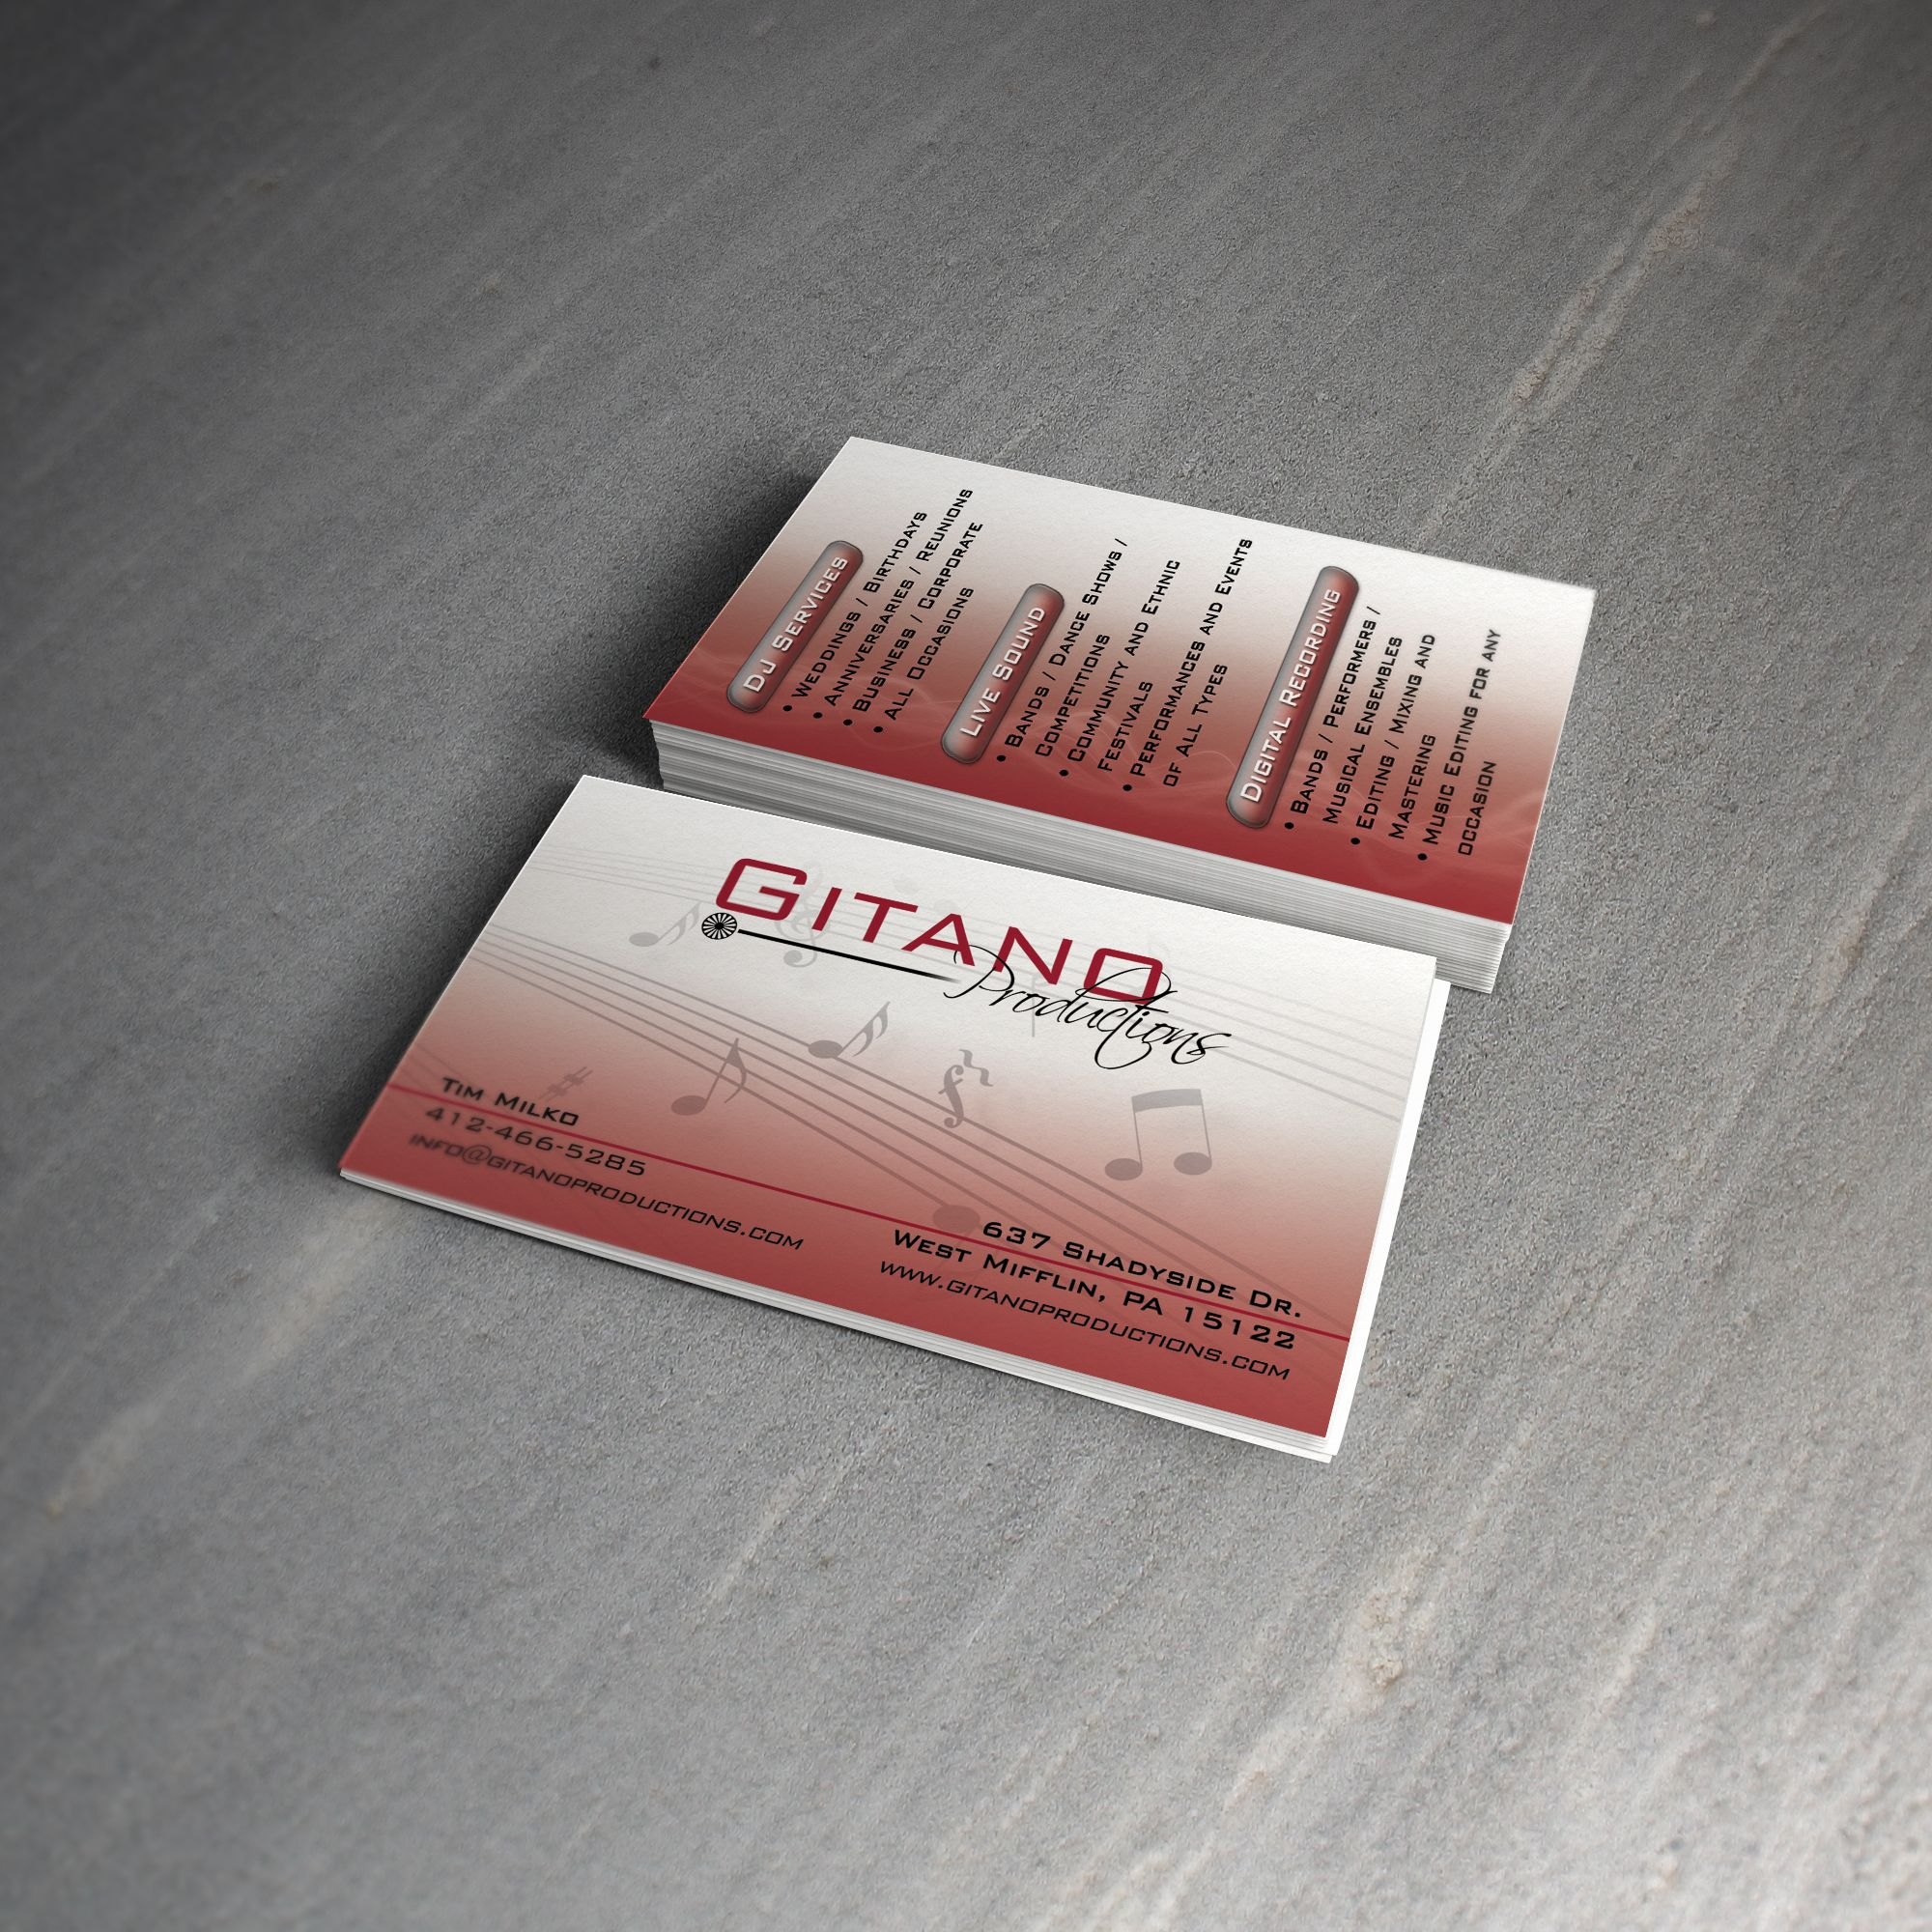 Gitano Productions 16pt dull cover with matte finish